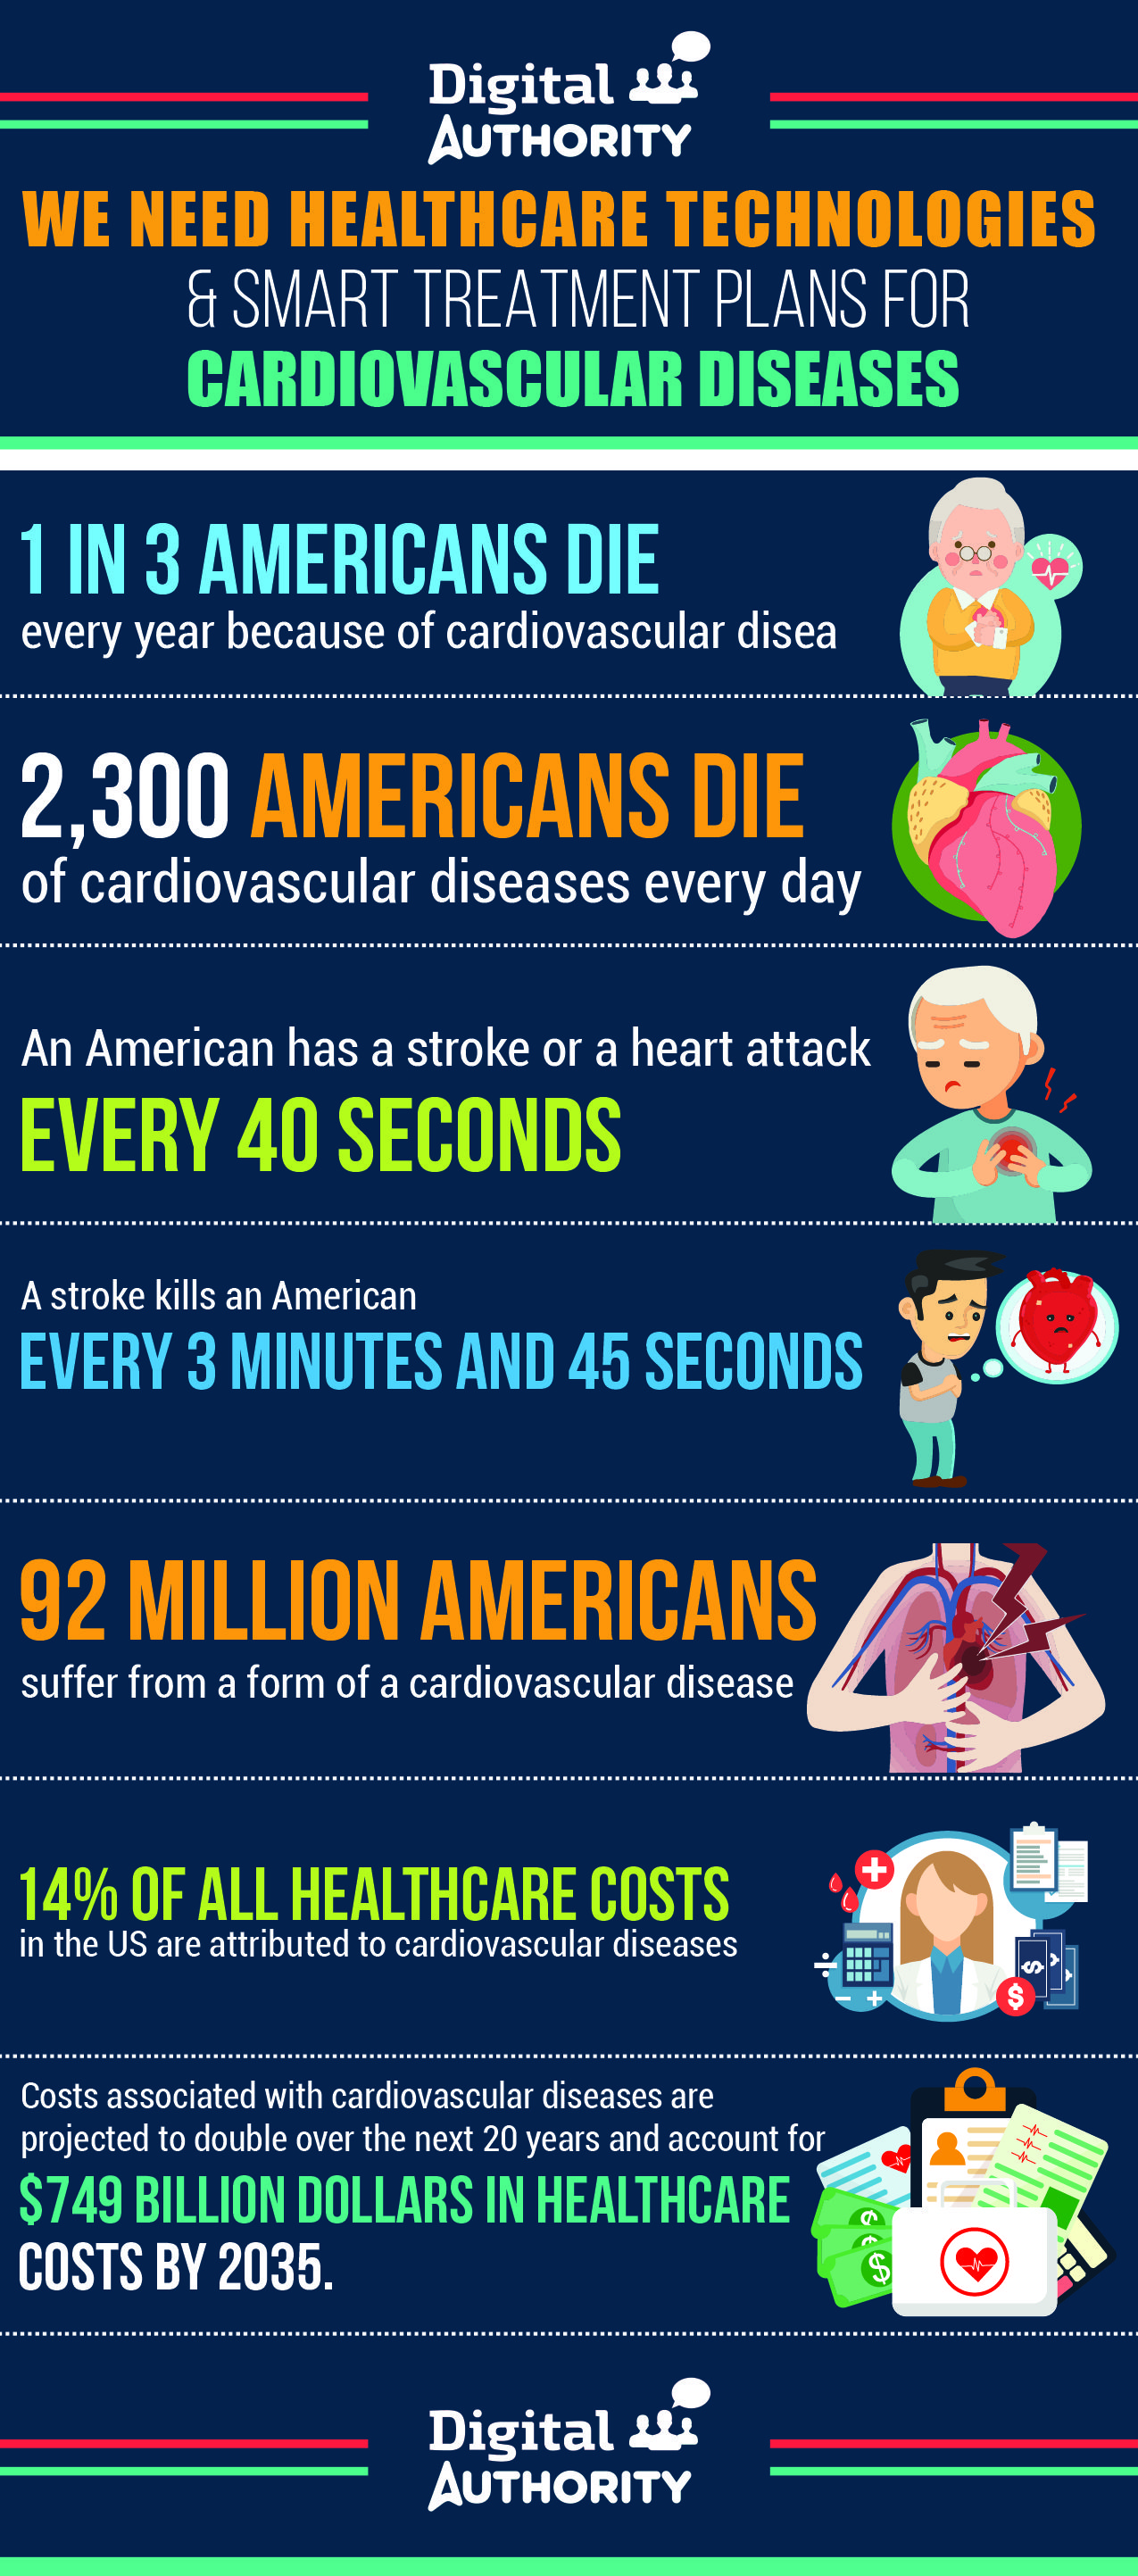 9 Cardiovascular Health Technologies Doctors Should Know in